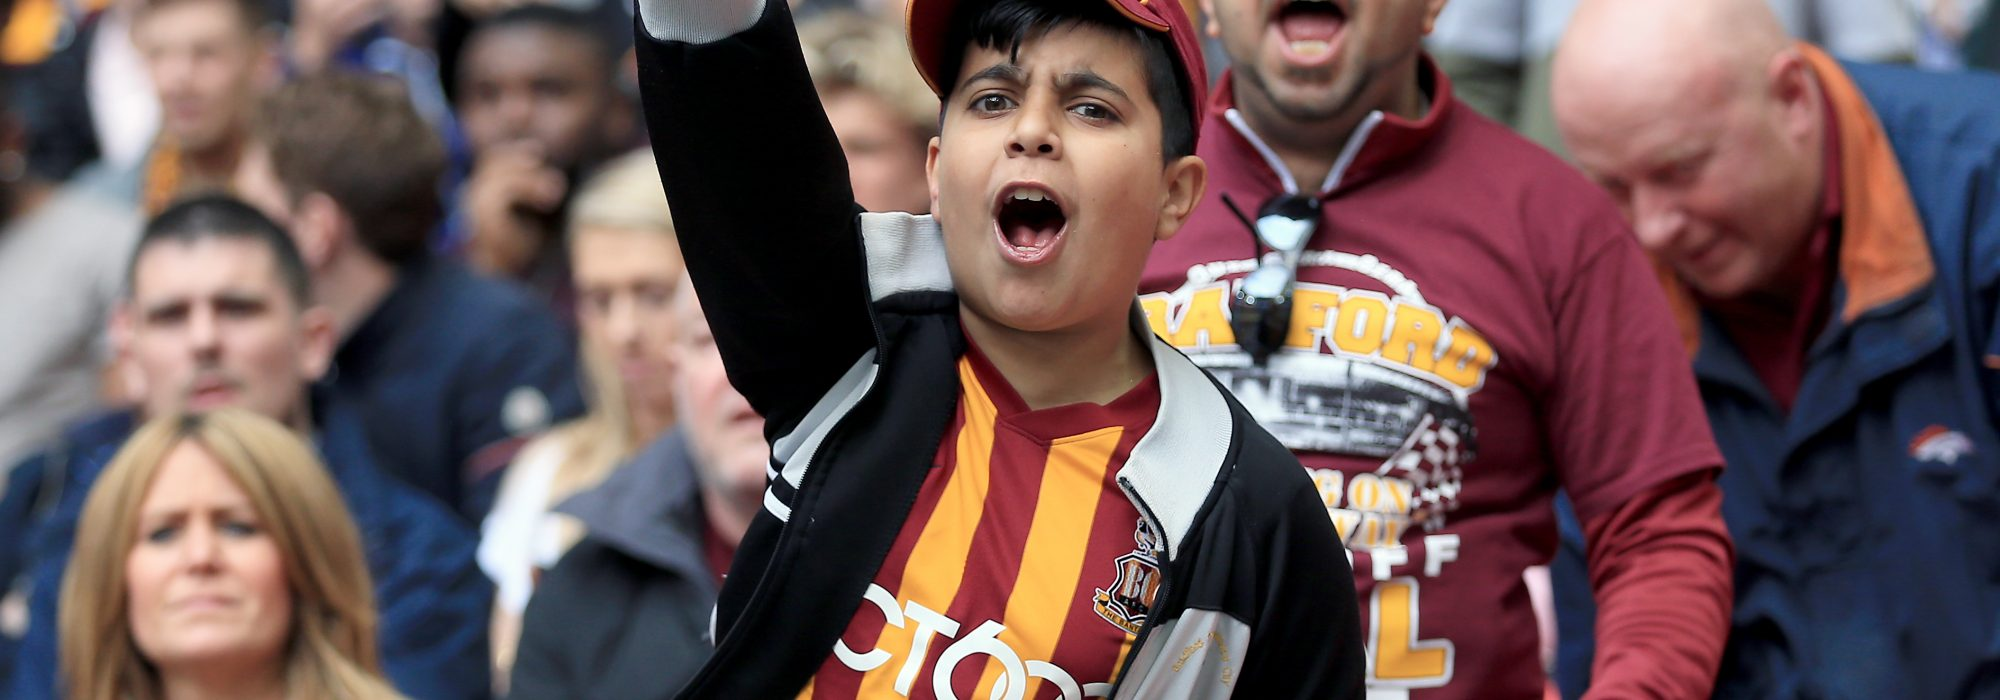 Bradford City fans show their support